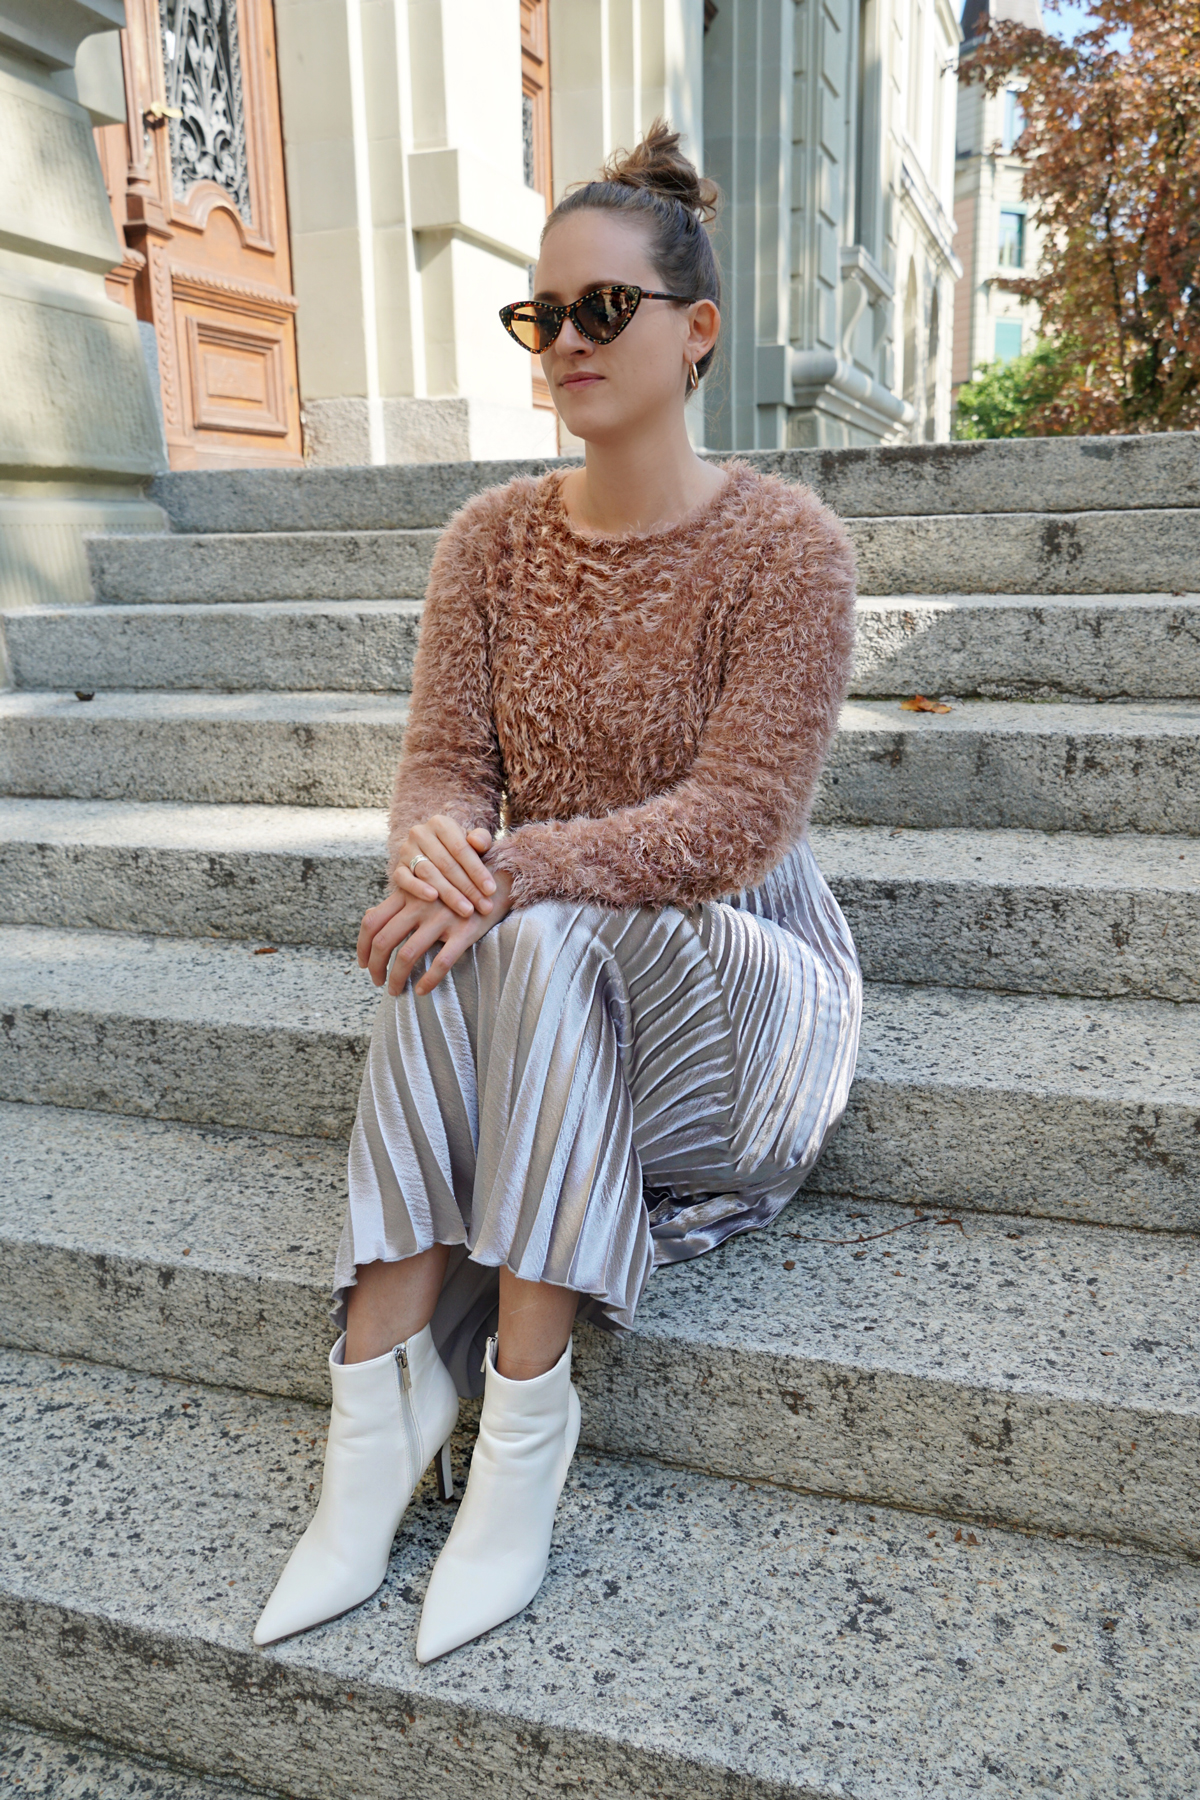 Silver pleated skirt with a sweater and white boots. Fall Trend.